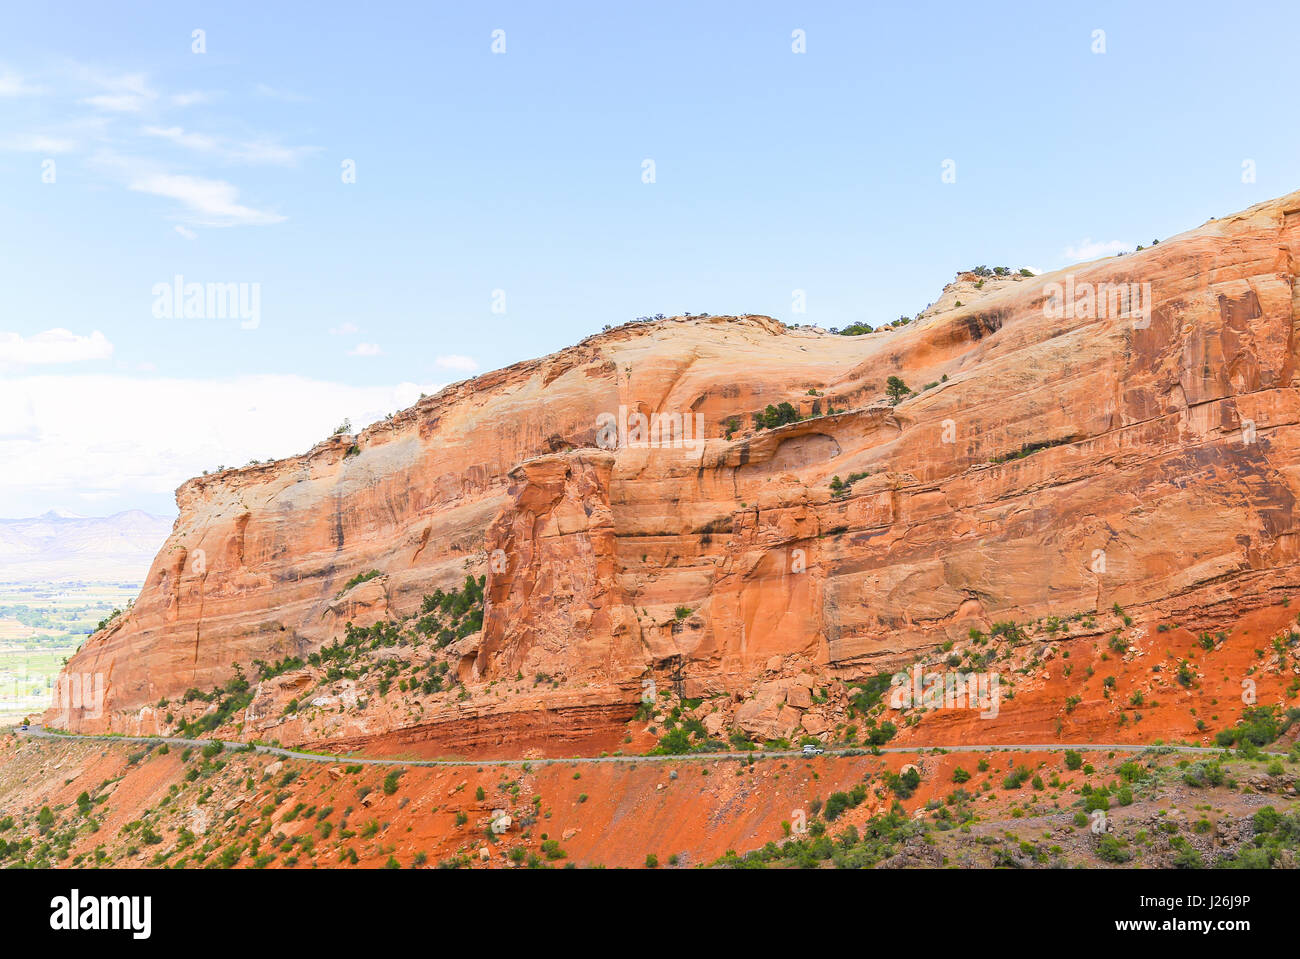 Cars driving on the Rim Rock Drive, the road going through the Colorado National Monument, in front of a red cliff. Stock Photo